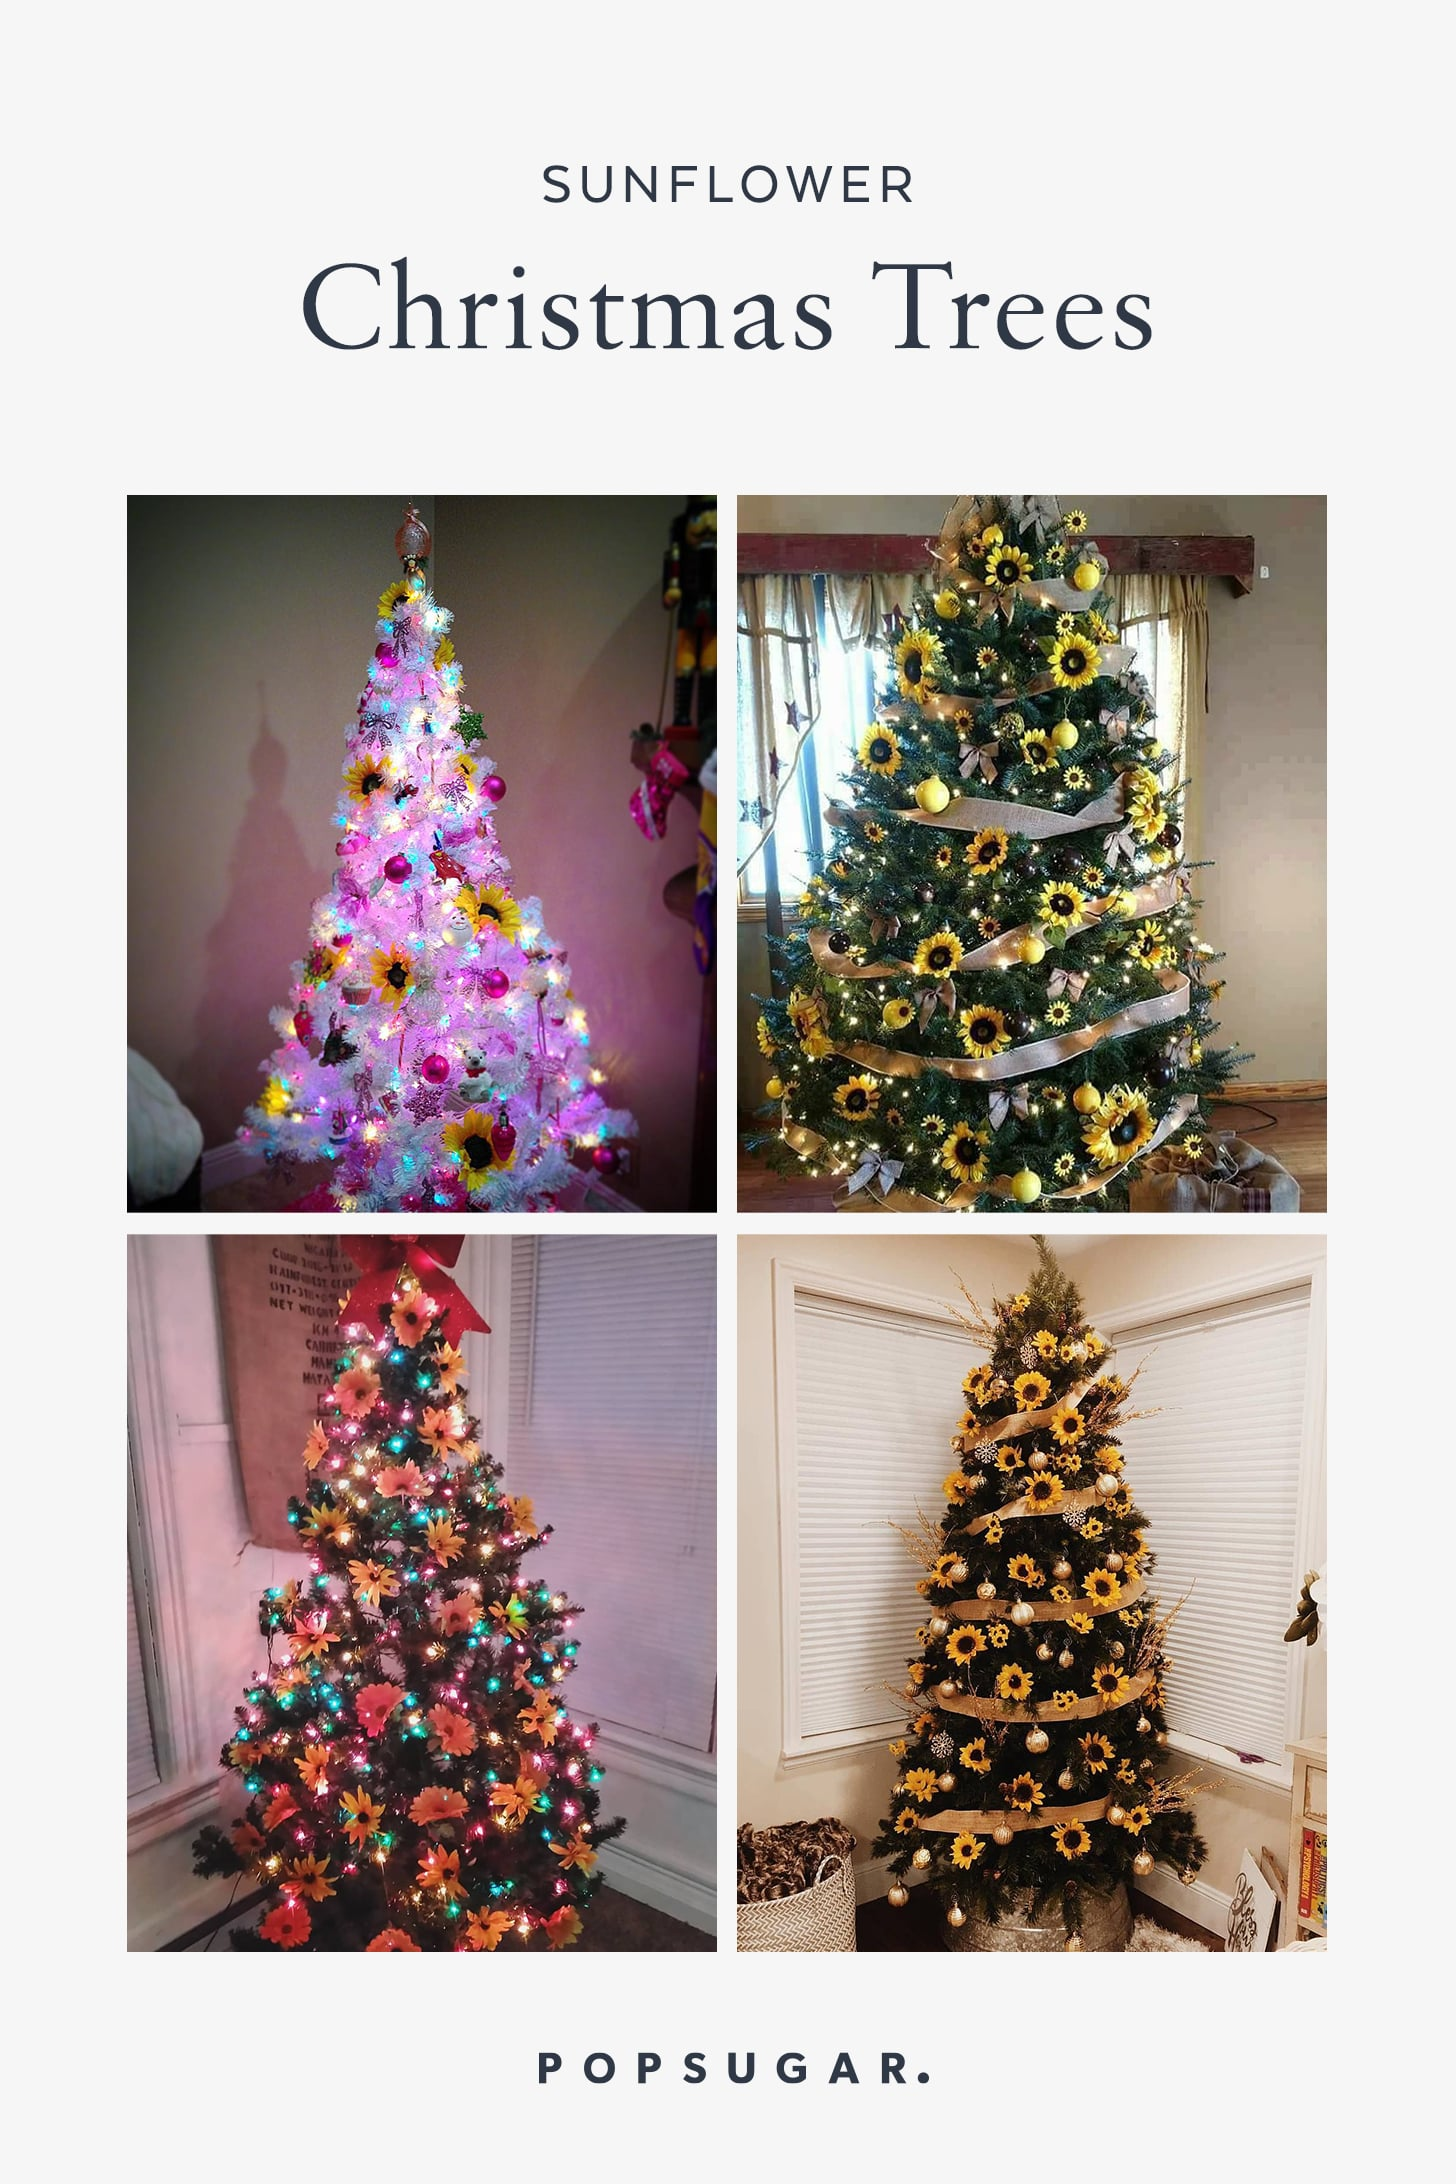 Sunflower Christmas Trees Are The Prettiest New Trend Popsugar Home